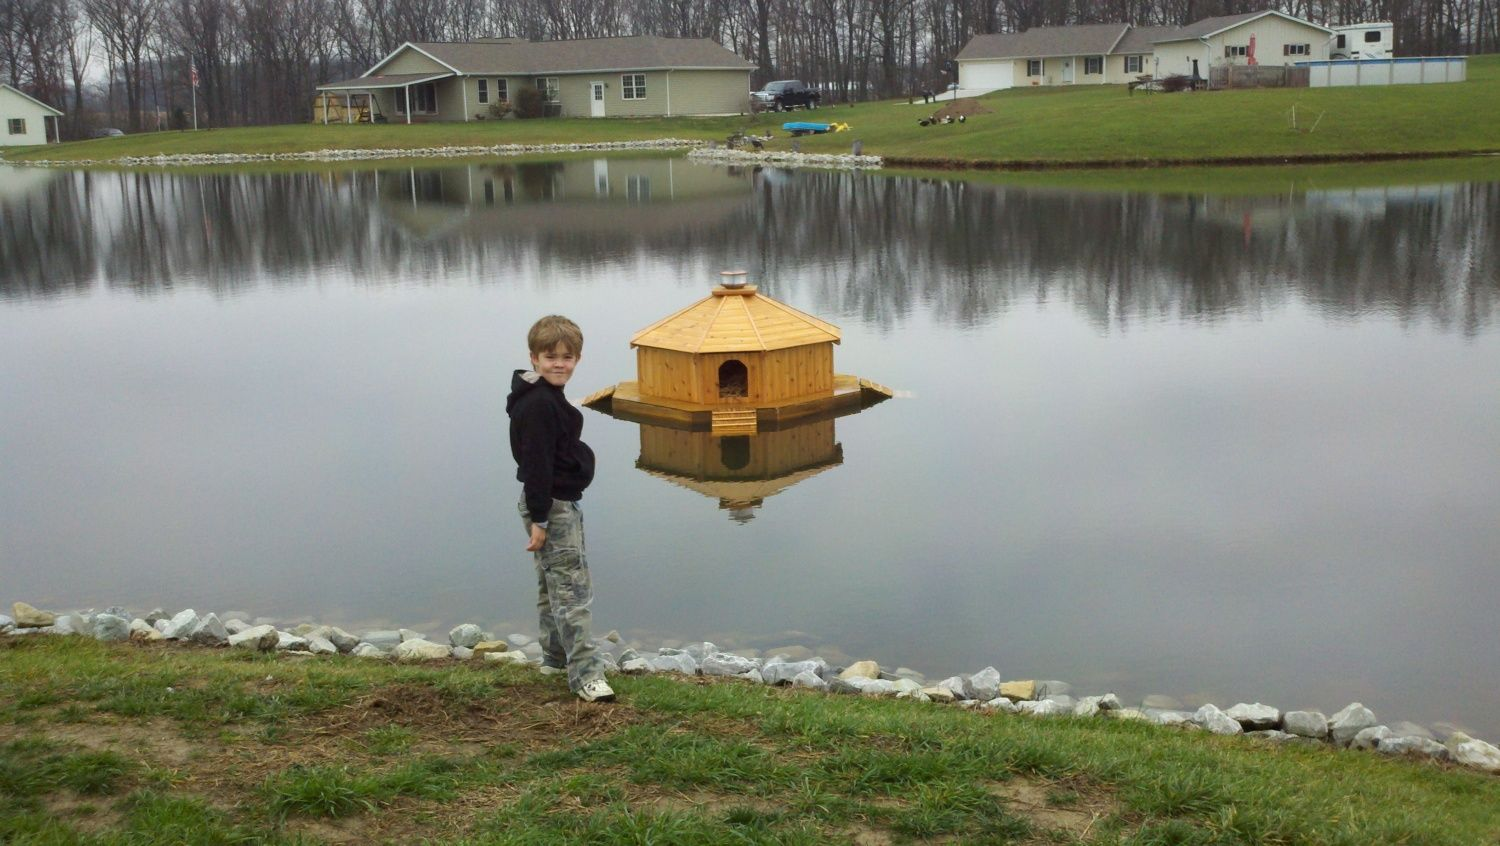 Diy Floating Duck Palace